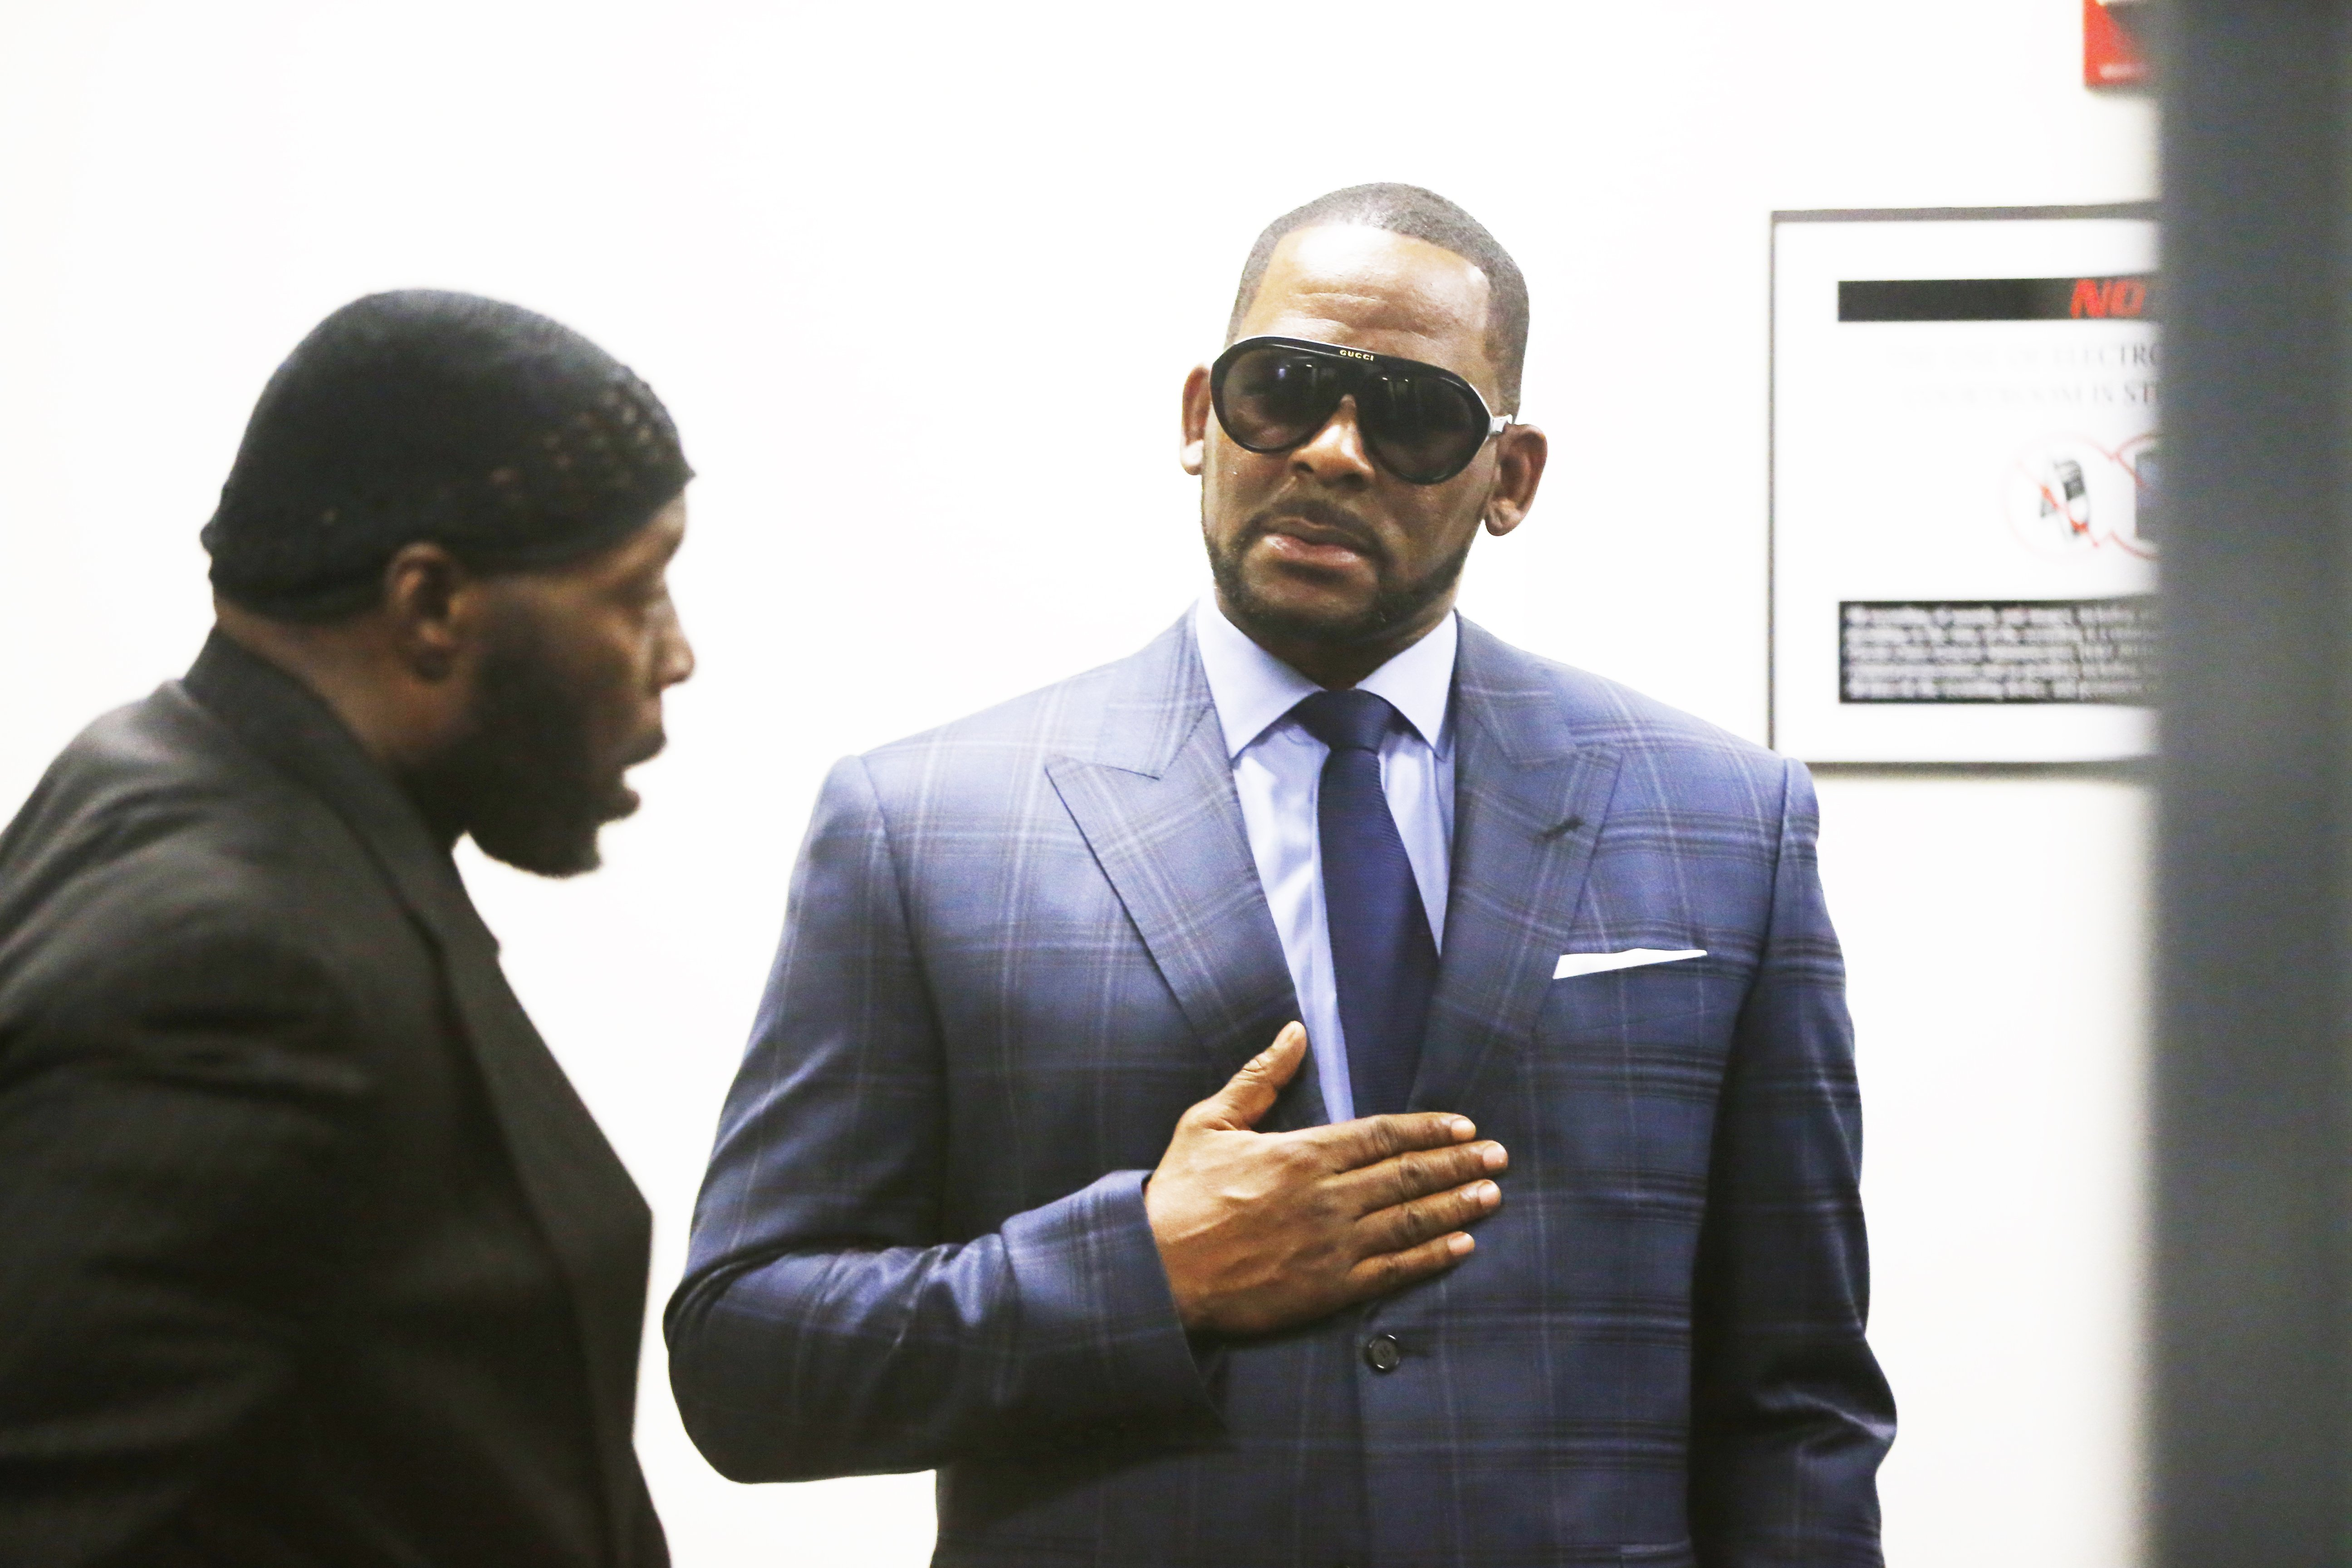 R. Kelly appears in family court over unpaid child support on March 9, 2019. | Photo: Getty Images